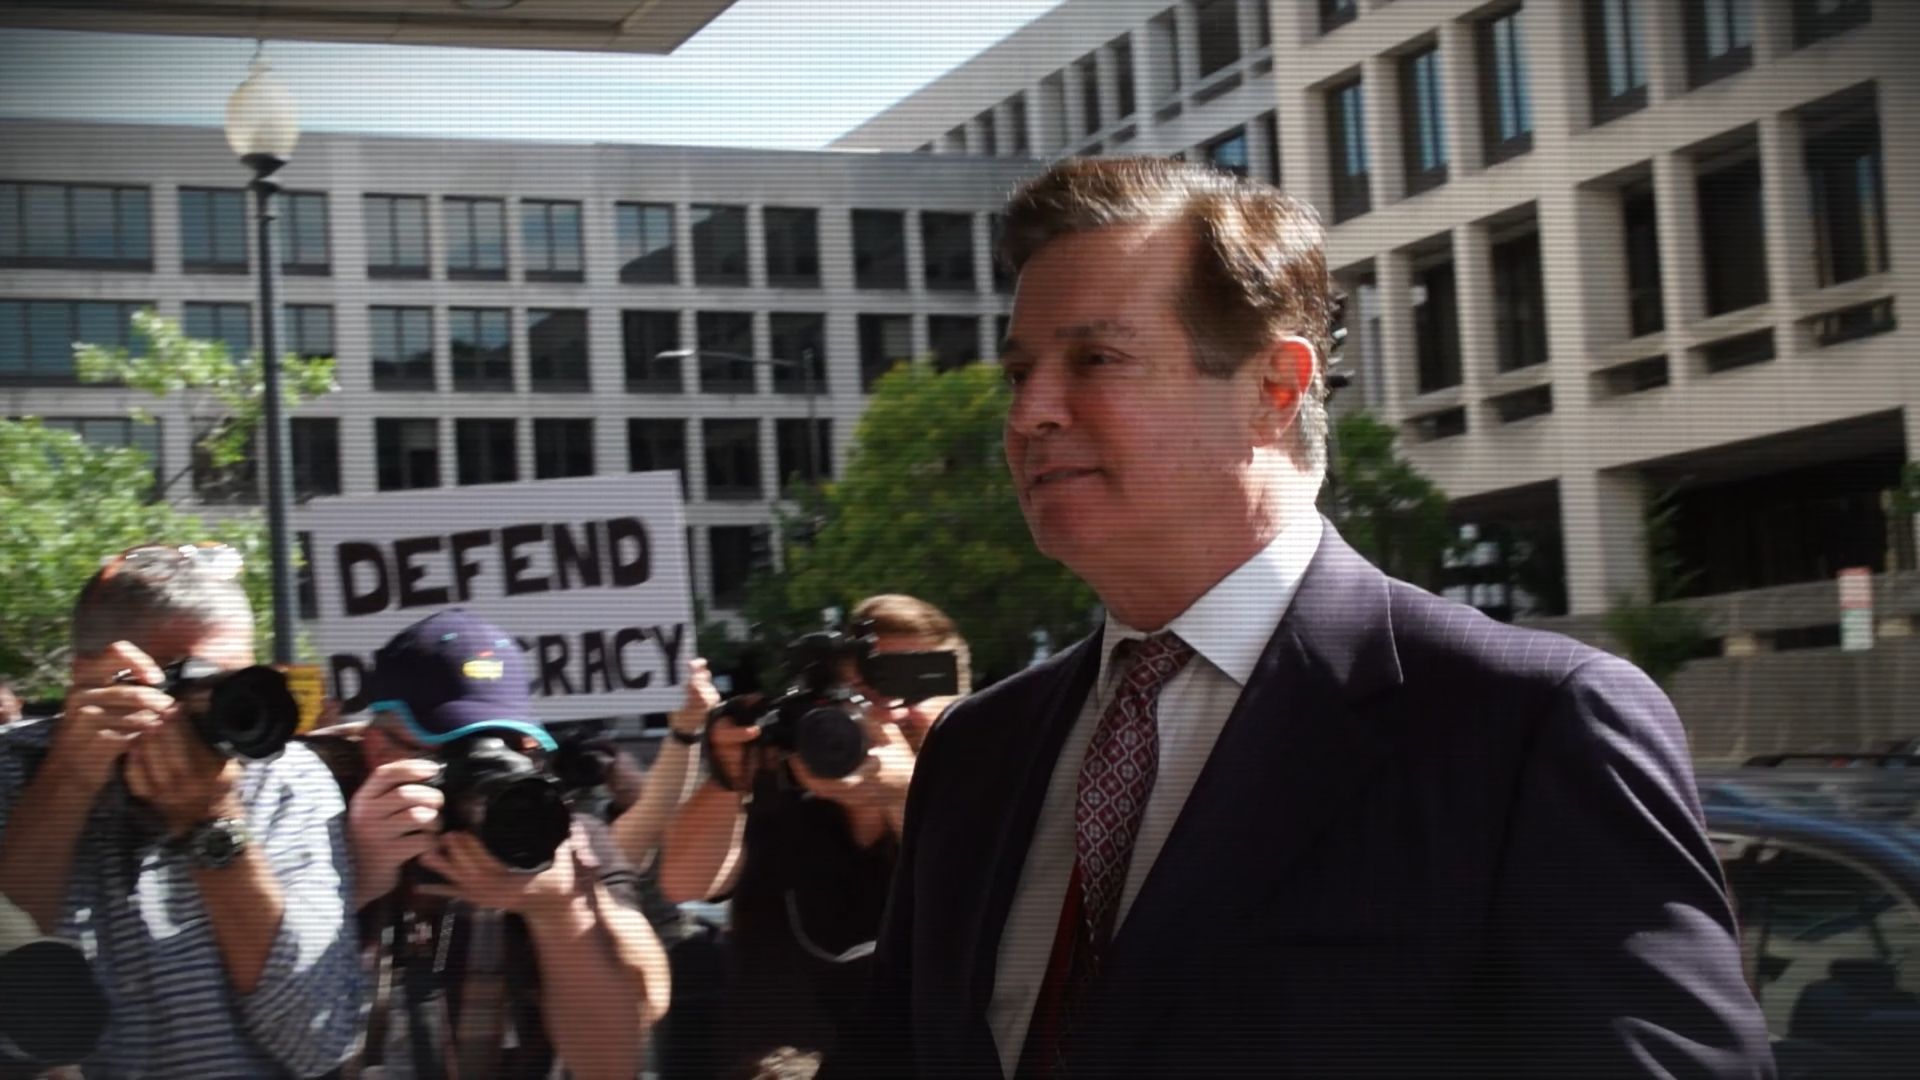 Paul Manafort a 'hardened' and 'bold' criminal, Mueller prosecutors tell judge